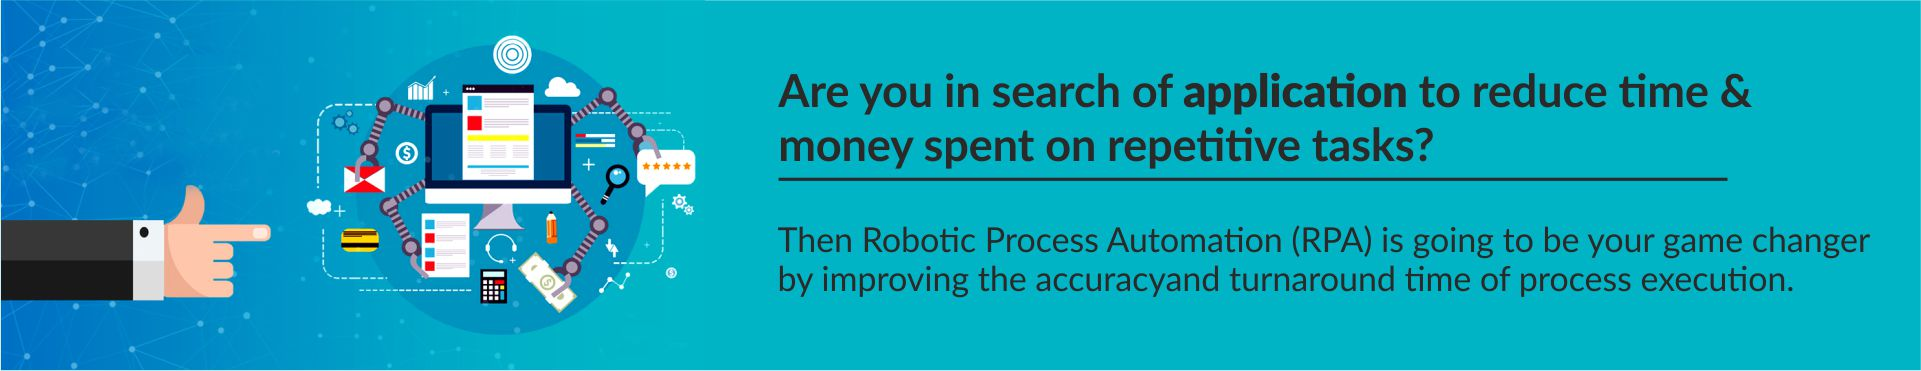 Zigna Analytics, Robotic Process Automation Consulting Services, RPA Solutions, Robotic Process Automation.